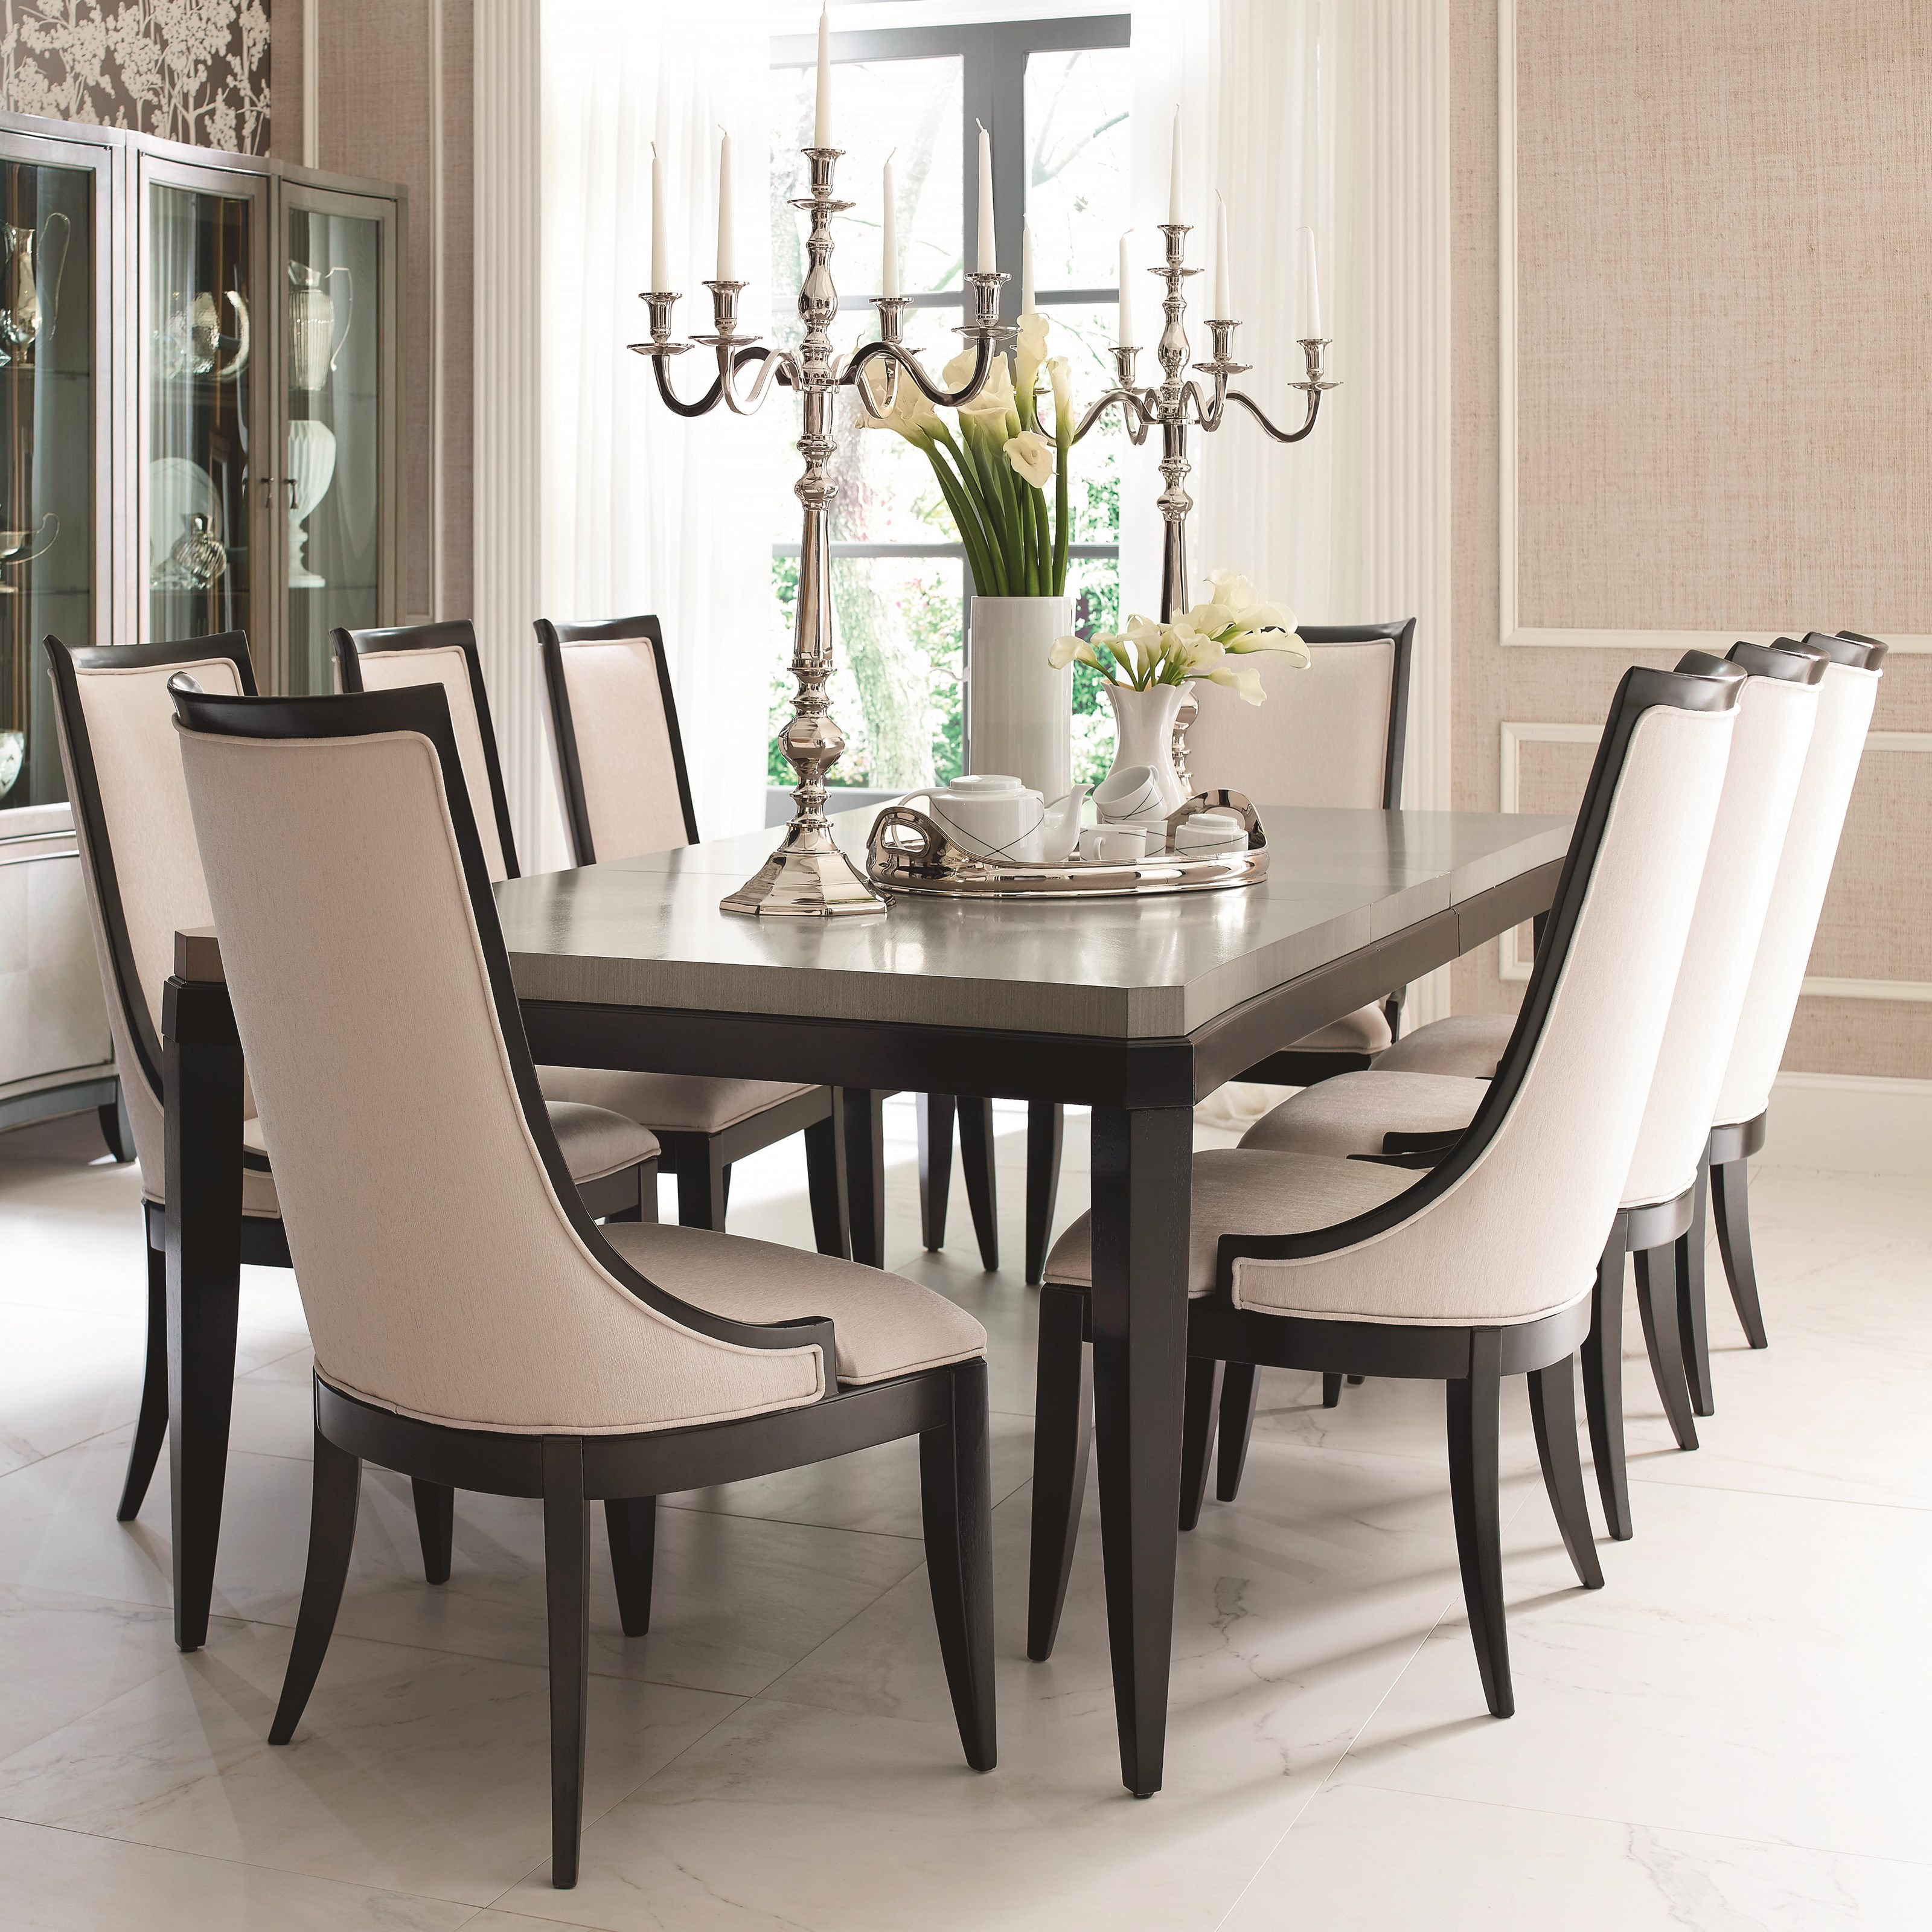 Symphony 9 Piece Rectangular Table Set By Legacy Classic At Belfort Furniture